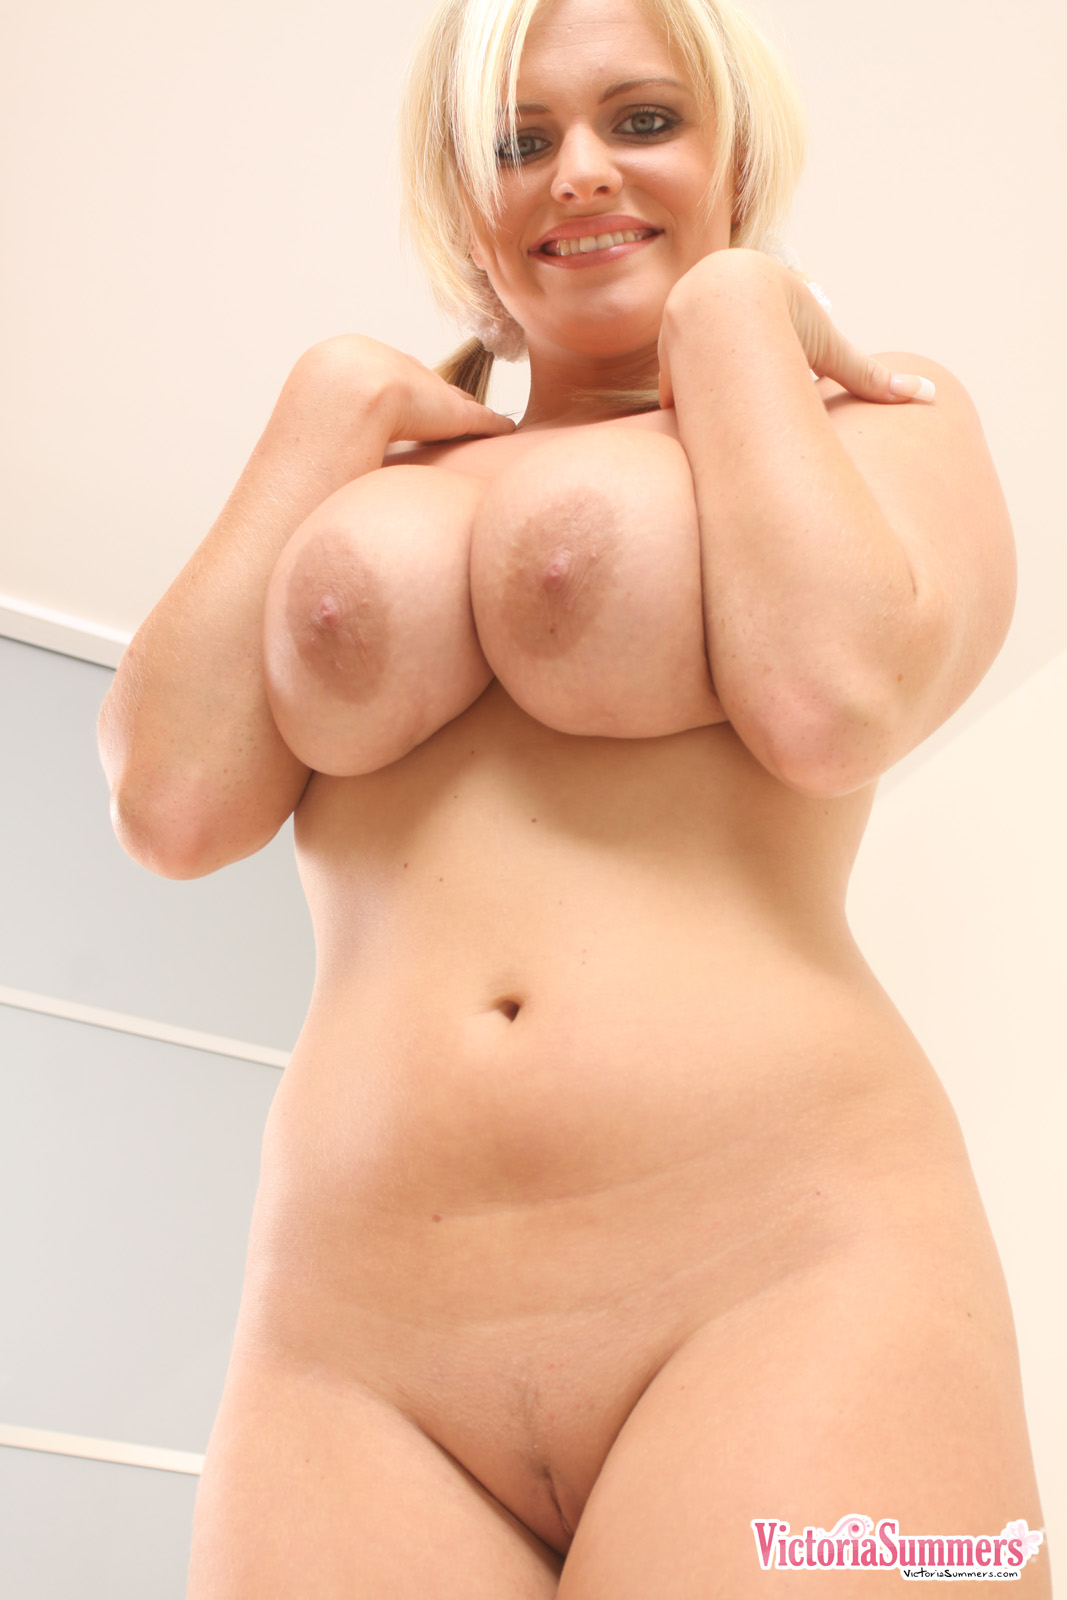 Bsummer nude black busty tits